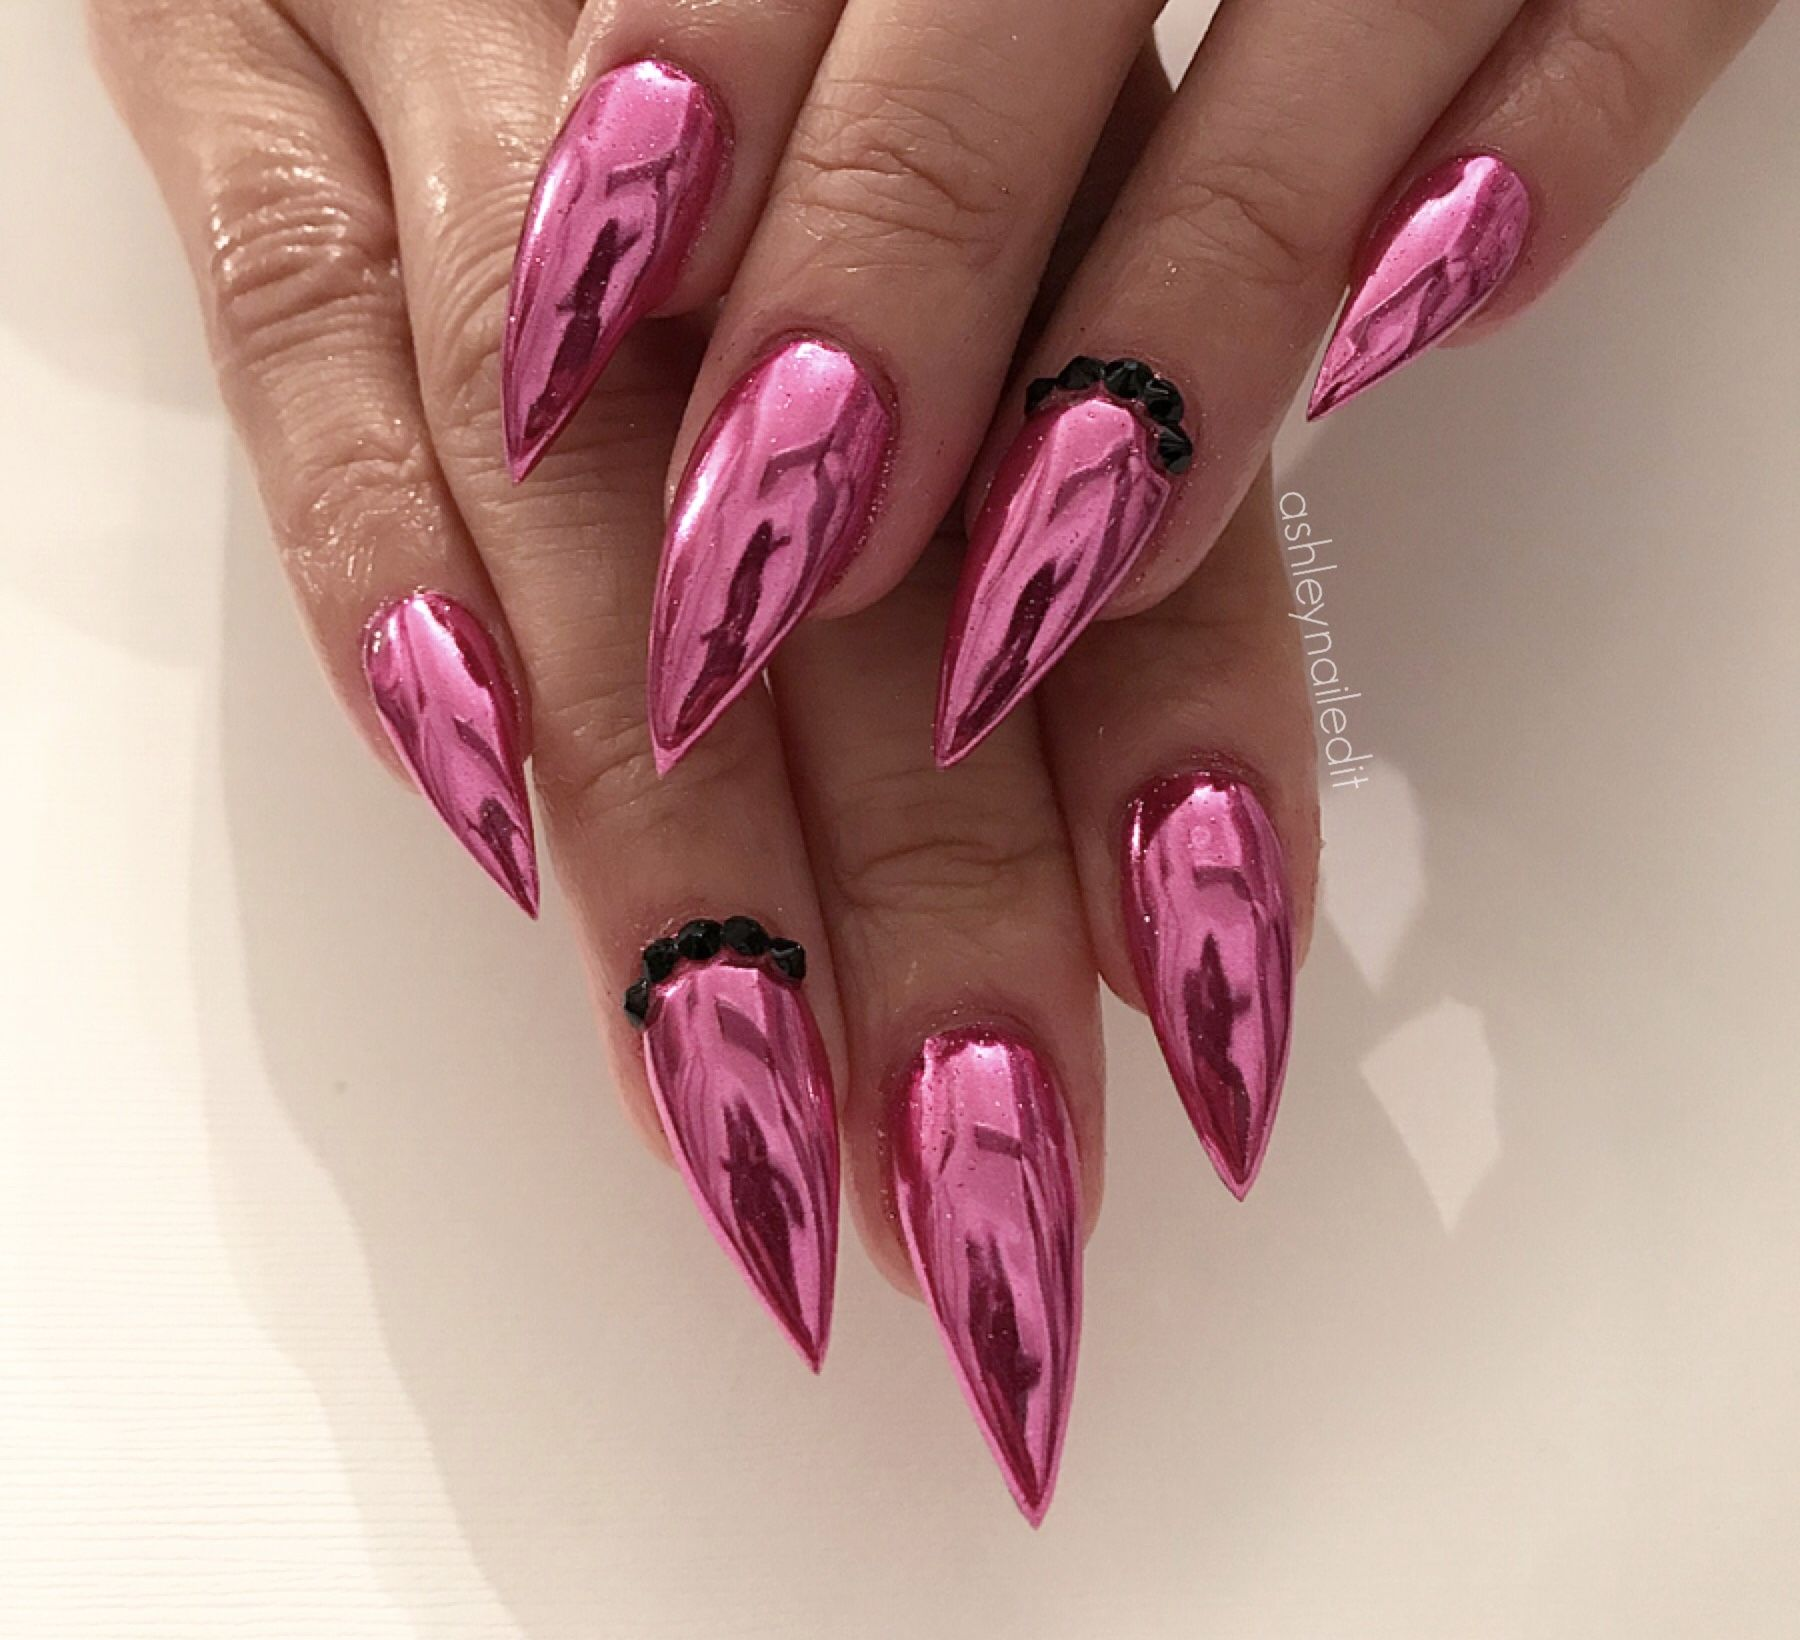 2018 pink chrome designs - nails by @ashleynailedit | Nails ...